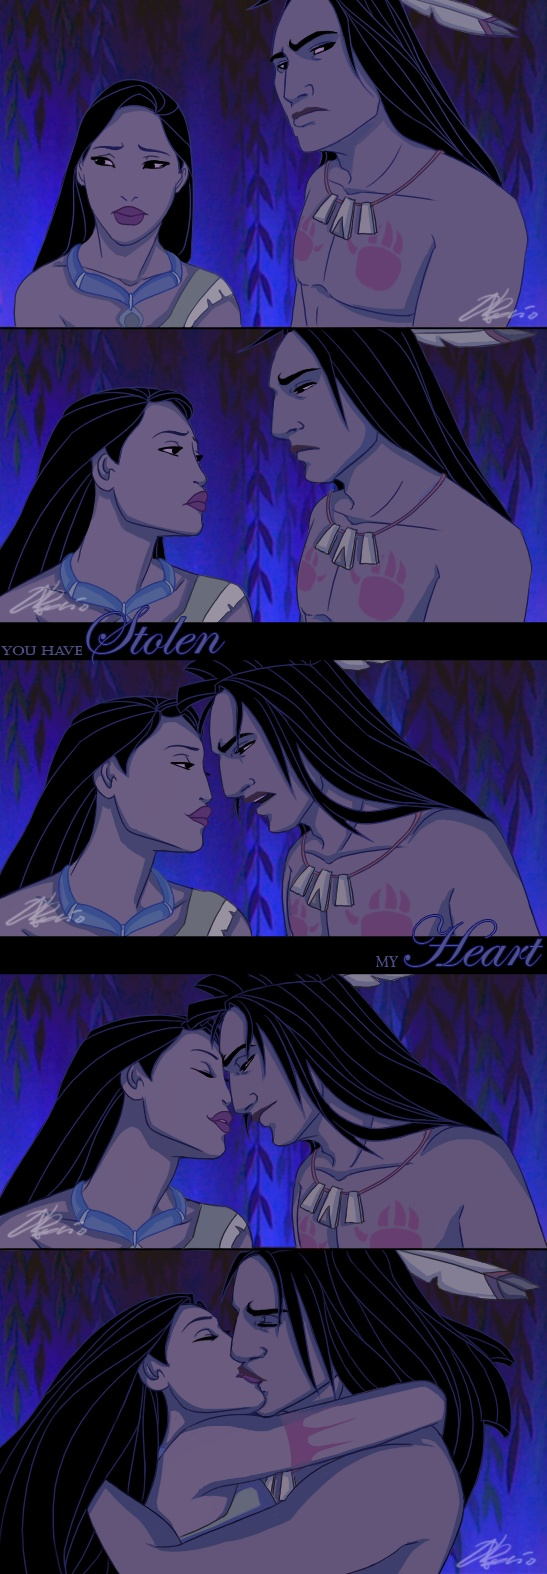 Ok this is MY personal opinion don't hate me. I think tht Kocoum nd Pocahontas should have gotten married. Not john smith nd Pocahontas fall in love. I think Kocoum nd Pocahontas are a cute couple AND he's waaay HOTTER than smith 2. ☺  ⤴THIS ⤴ is how Pocahontas should've ended. C'mon how many ppl really liked how it ended for reals? She didn't even get her Prince Charming at the end he went back to bloody Britain and don't get me started on john rolf